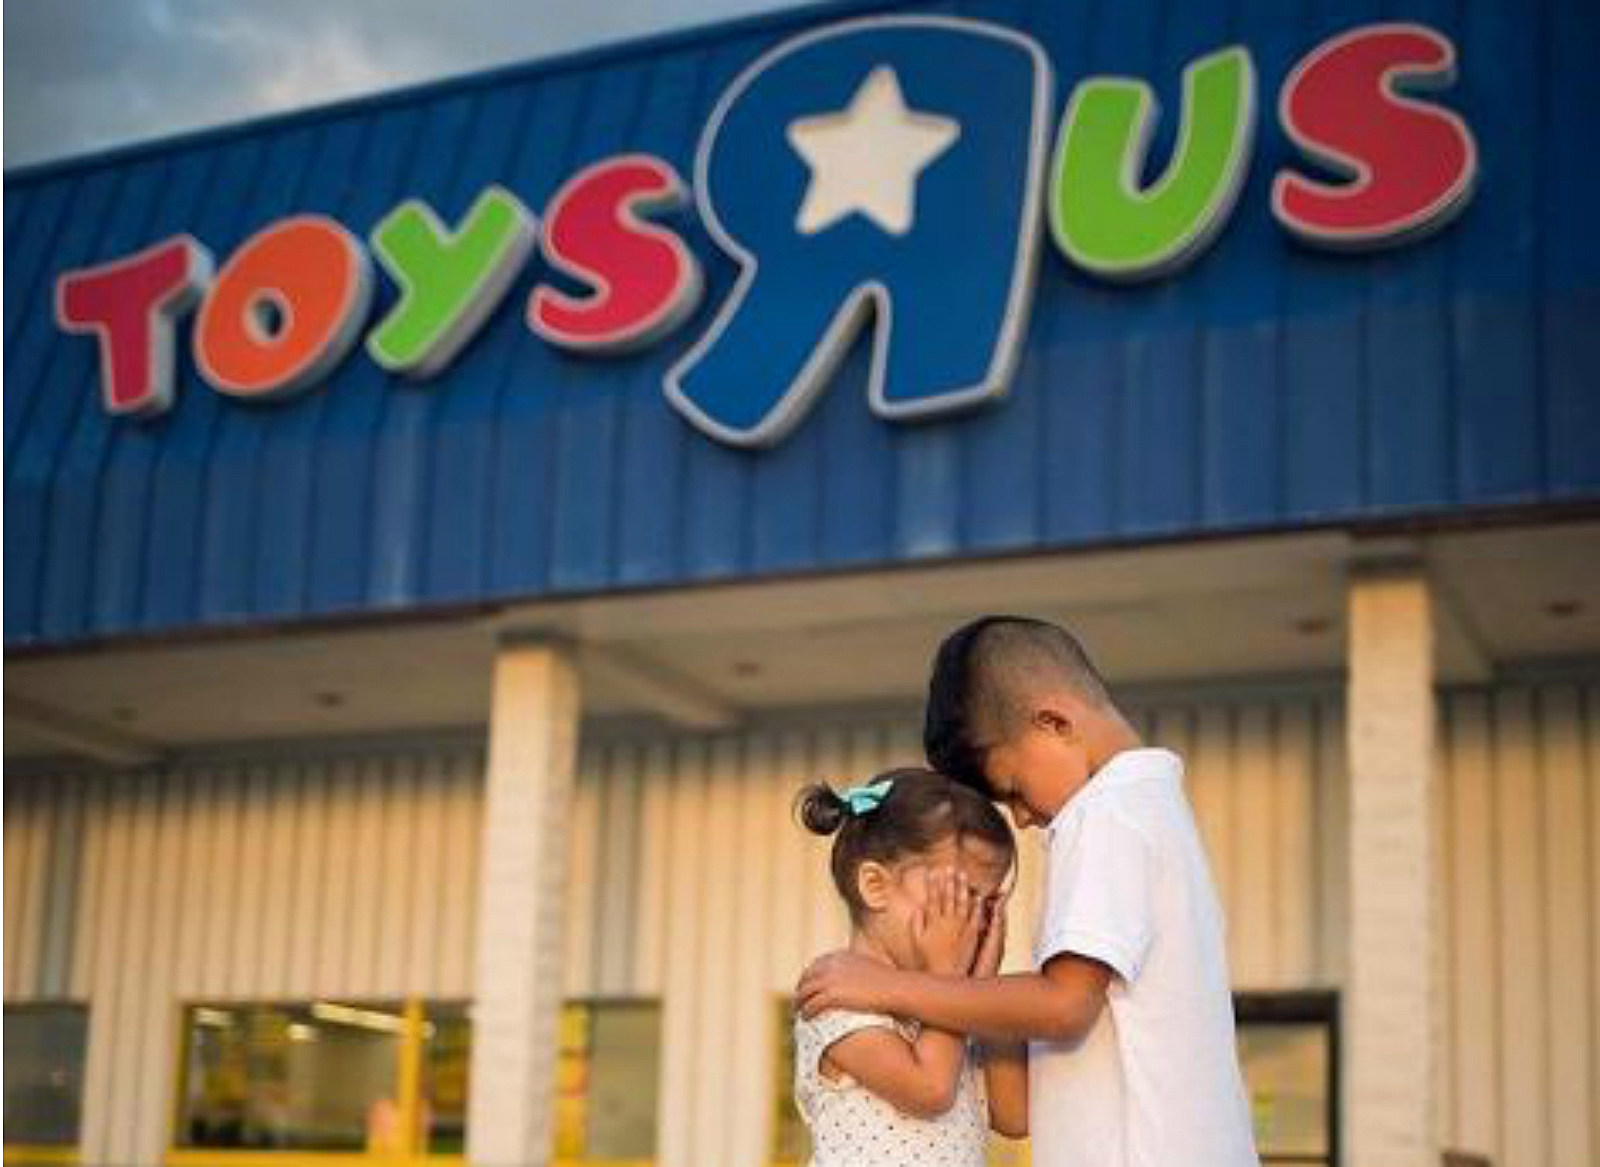 Nh Toys R Us Stores Are Closing And Geoffrey The Giraffe Is Sad